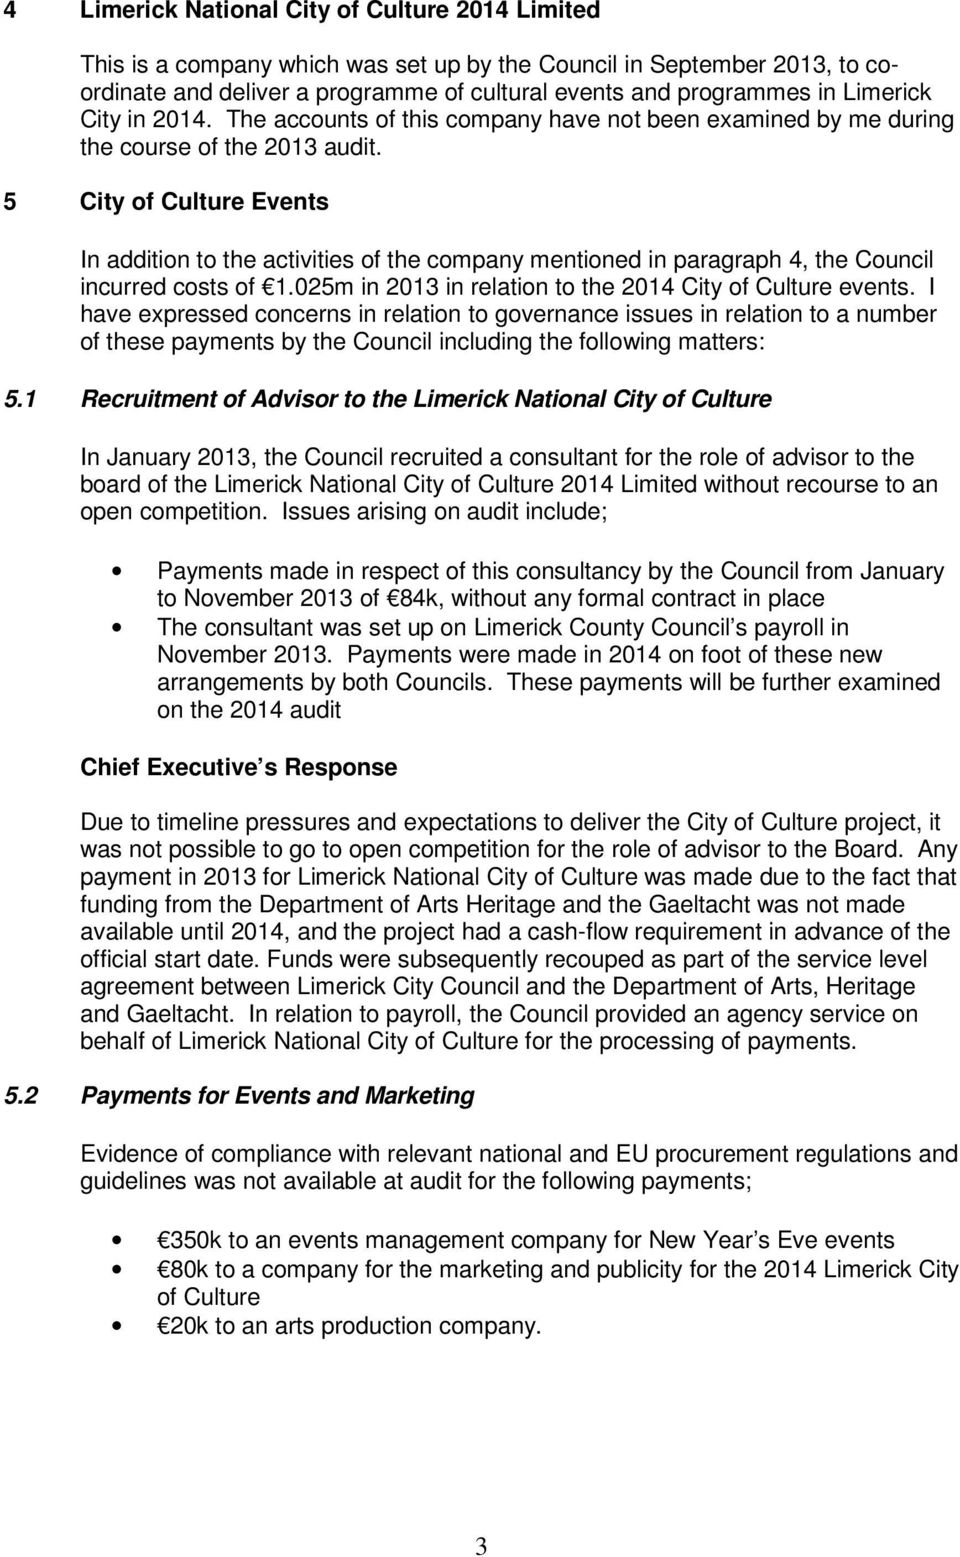 5 City of Culture Events In addition to the activities of the company mentioned in paragraph 4, the Council incurred costs of 1.025m in 2013 in relation to the 2014 City of Culture events.